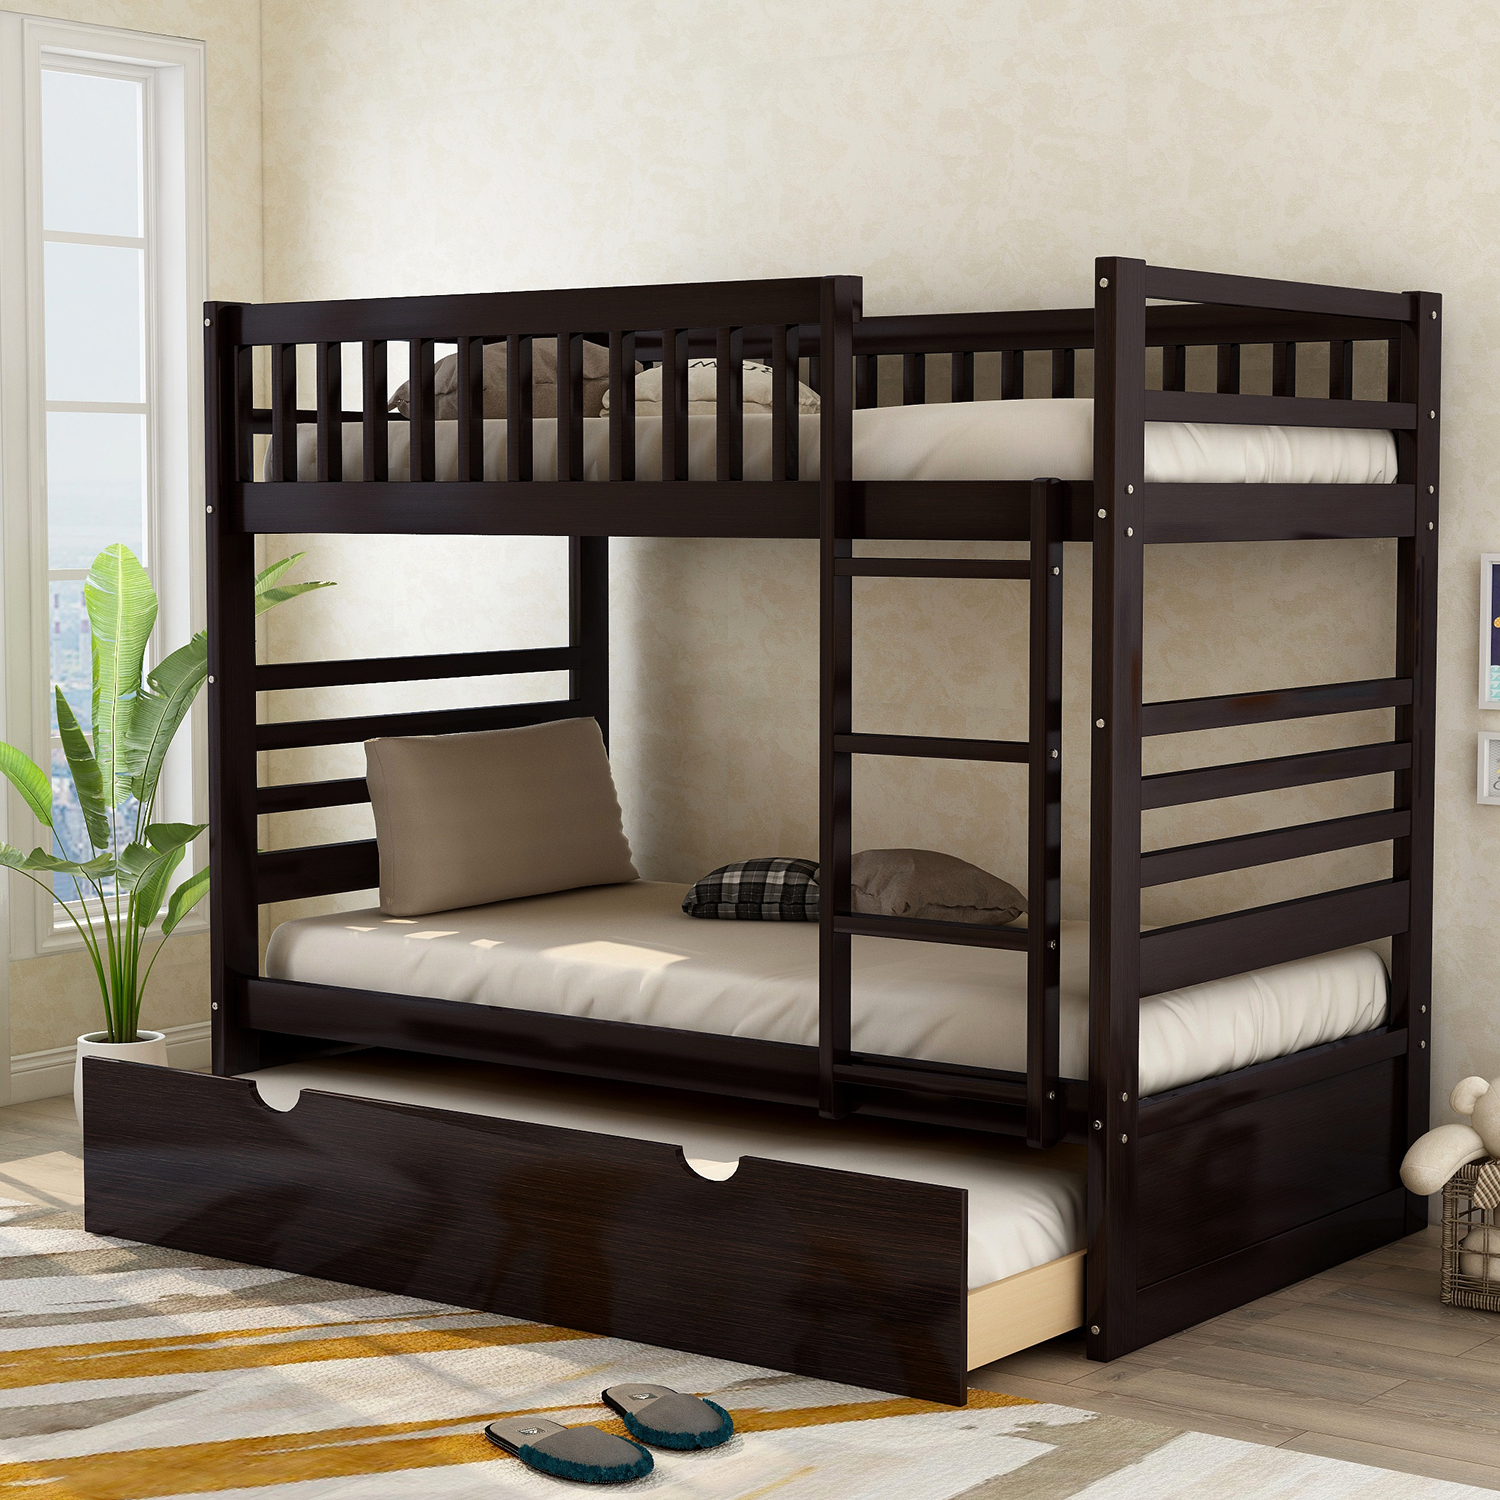 Picture of: Solid Wood Bunk Bed With Removable Ladders And Two Storage Drawers Dark Espresso Merax Twin Over Full Bunk Bed Beds